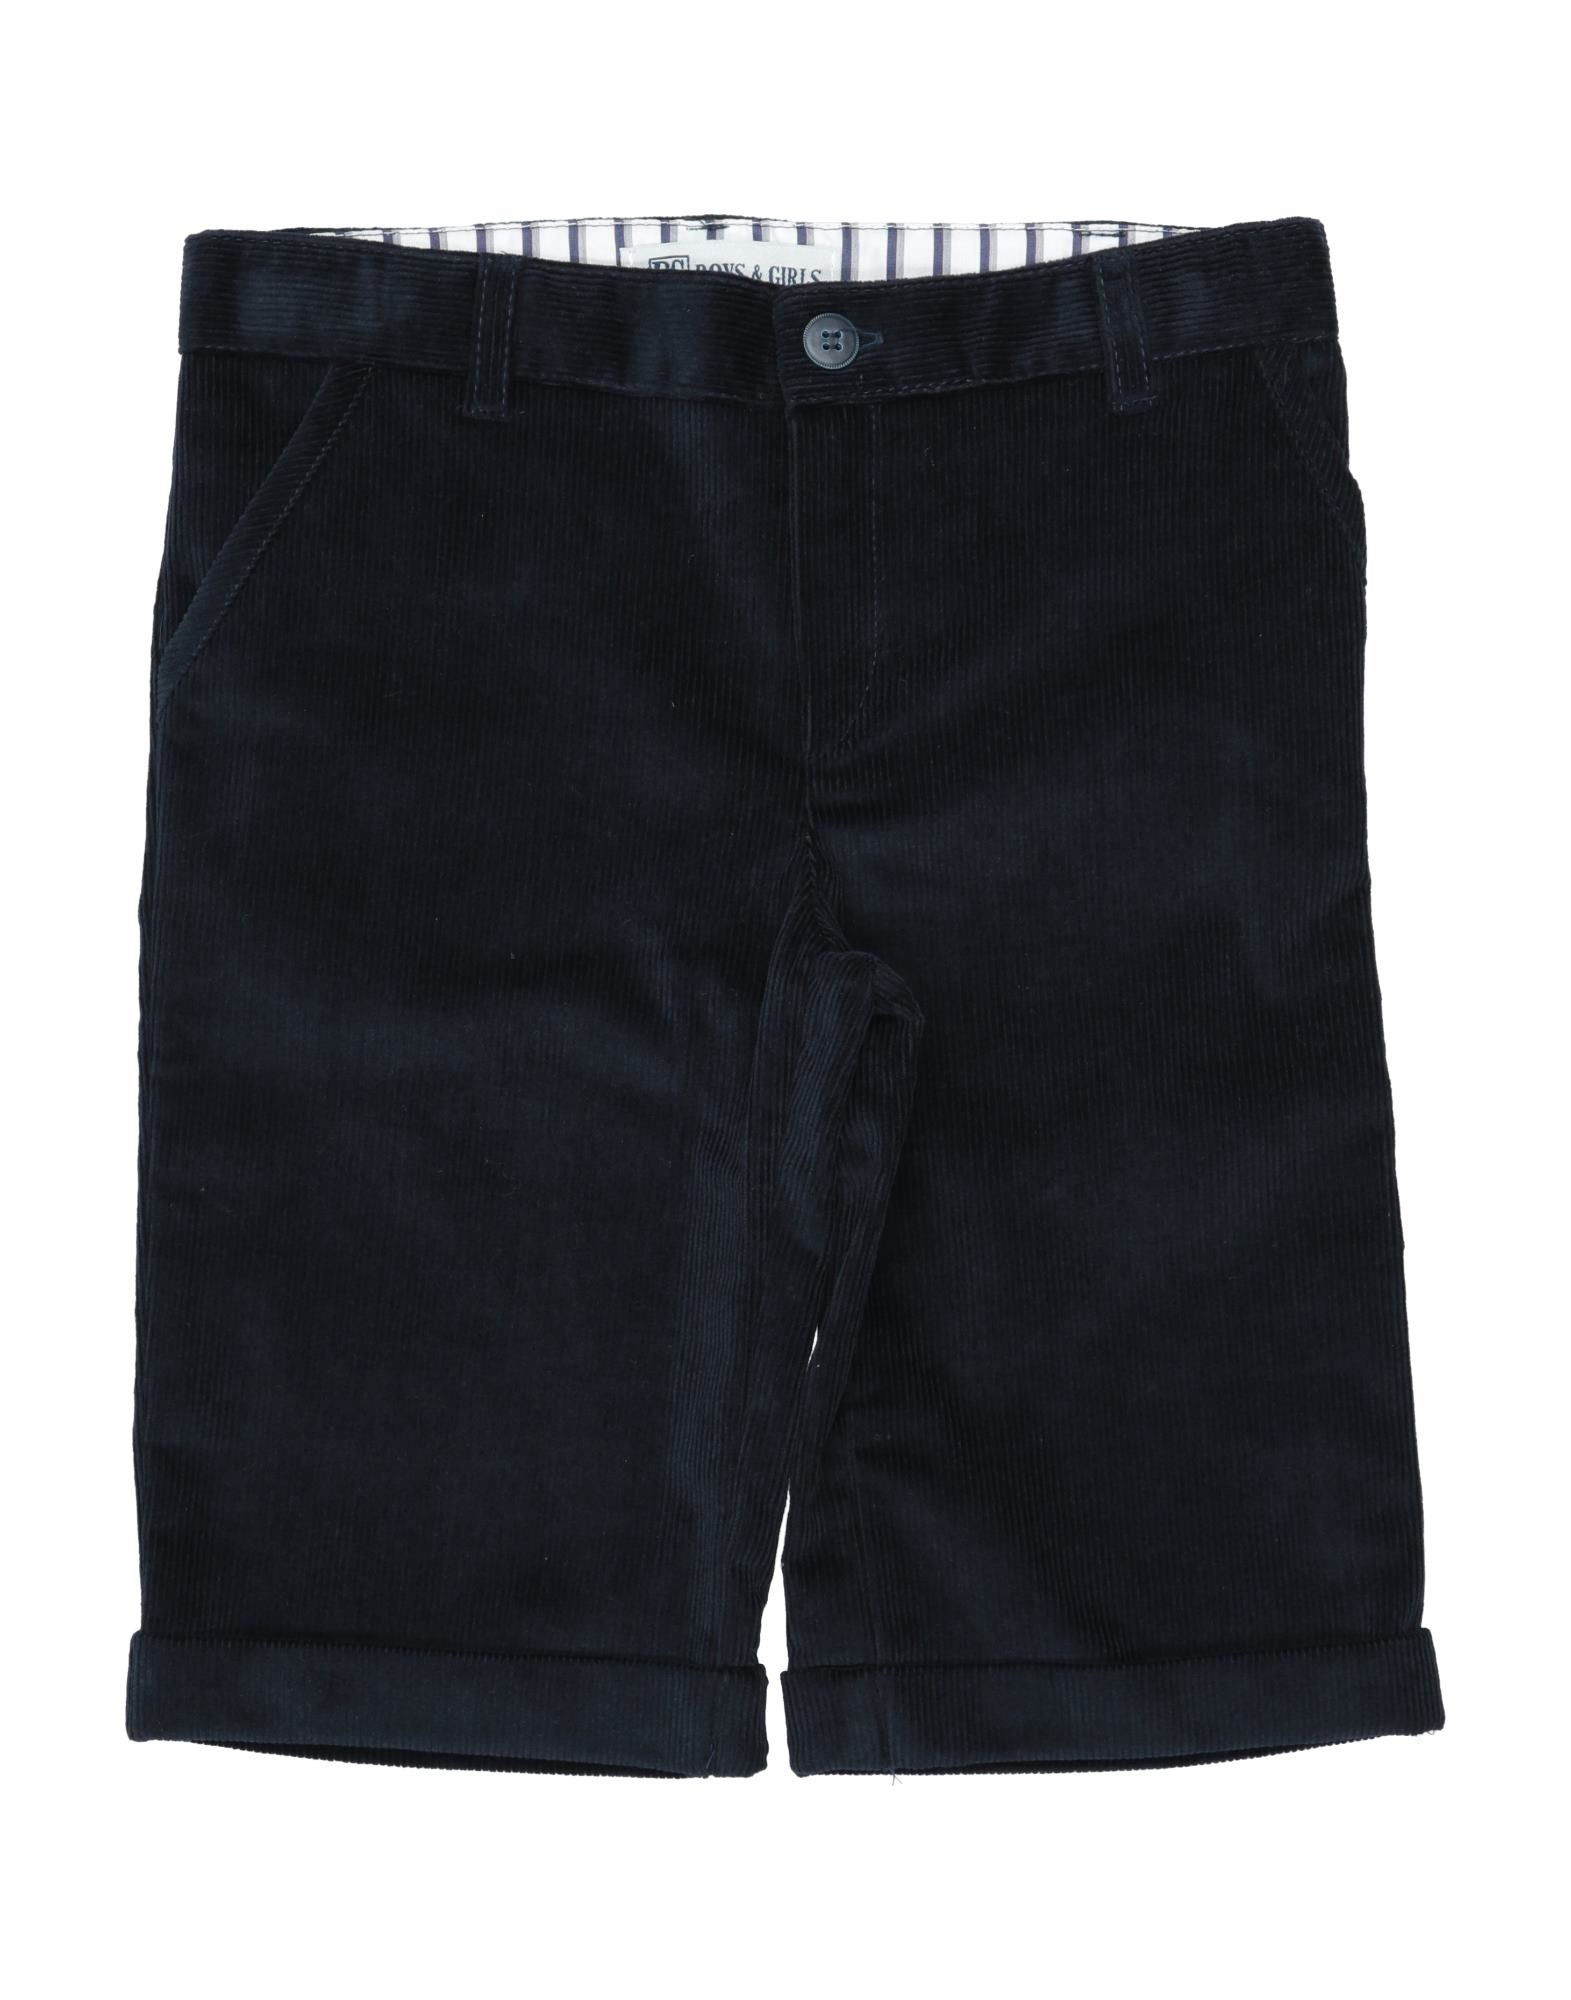 Bg Boys & Girls Kids' Bermudas In Blue